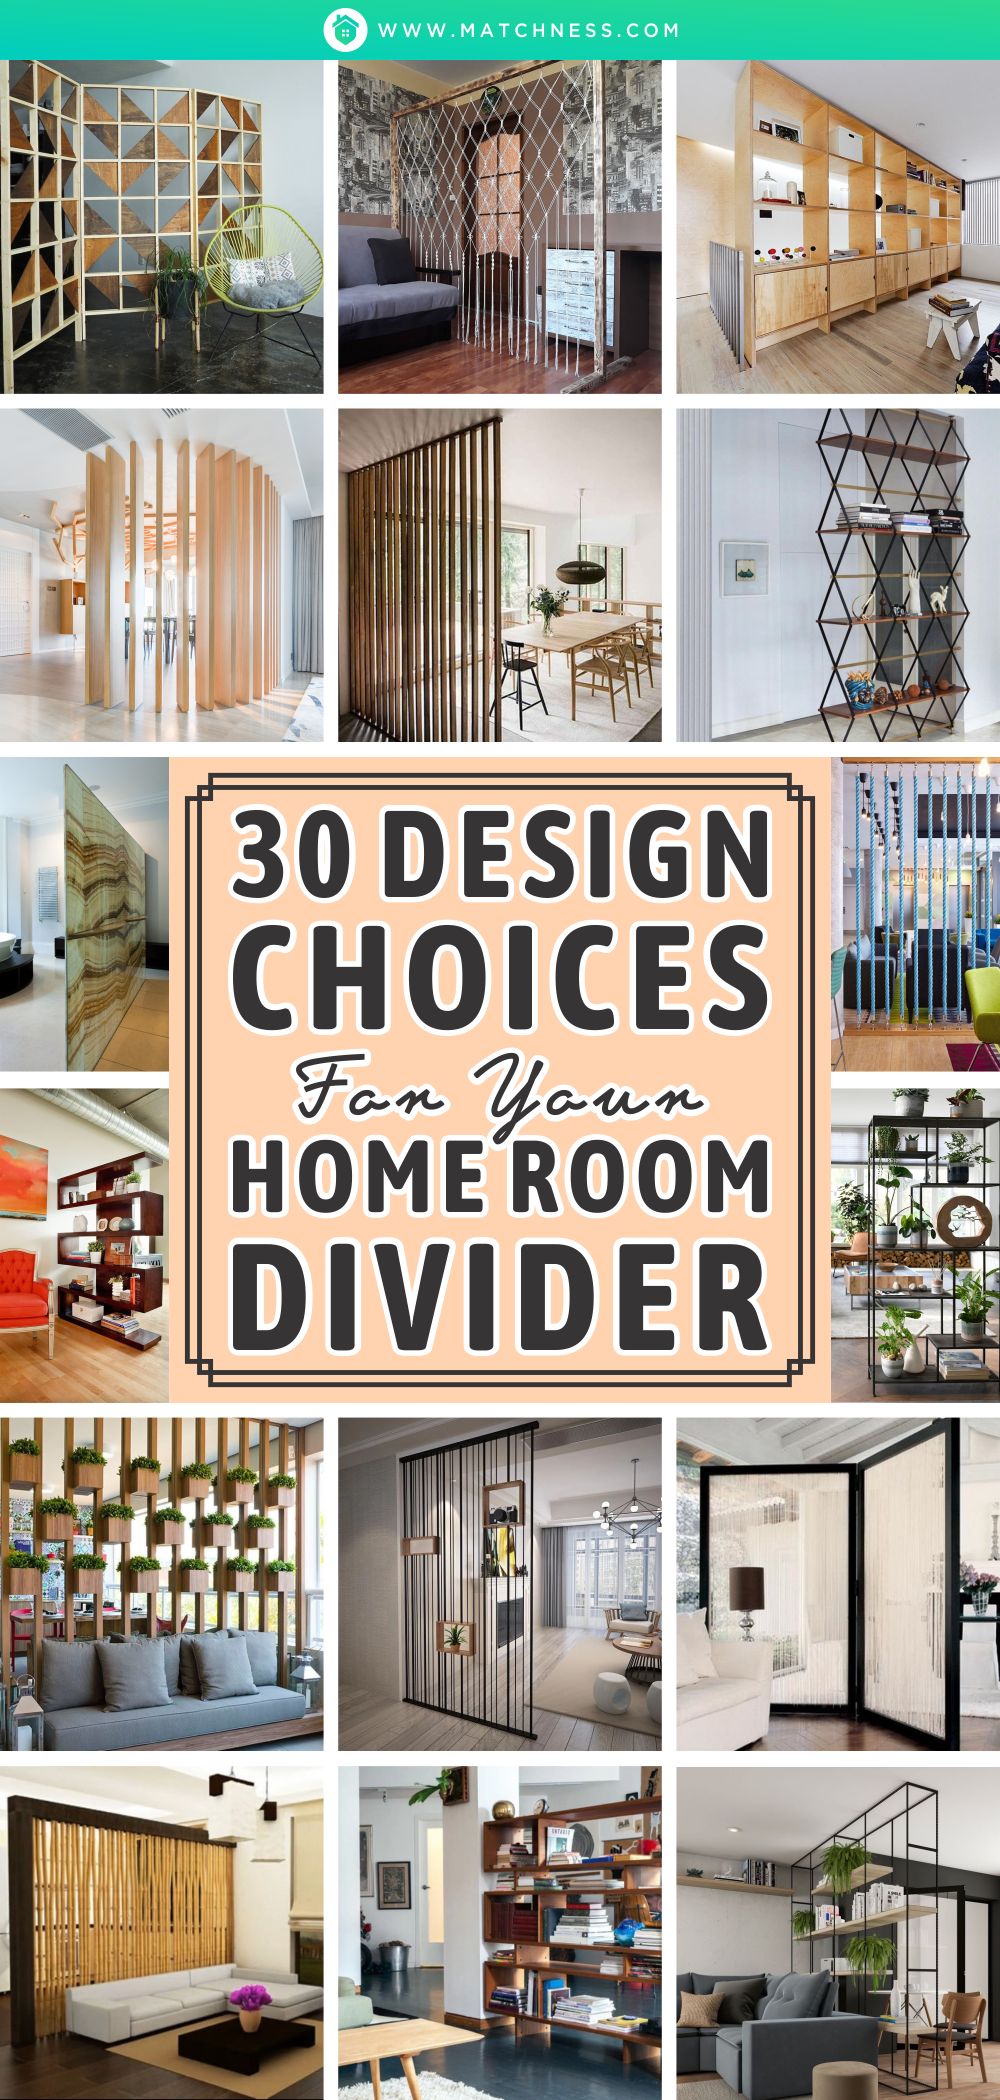 30-design-choices-for-your-home-room-divider1